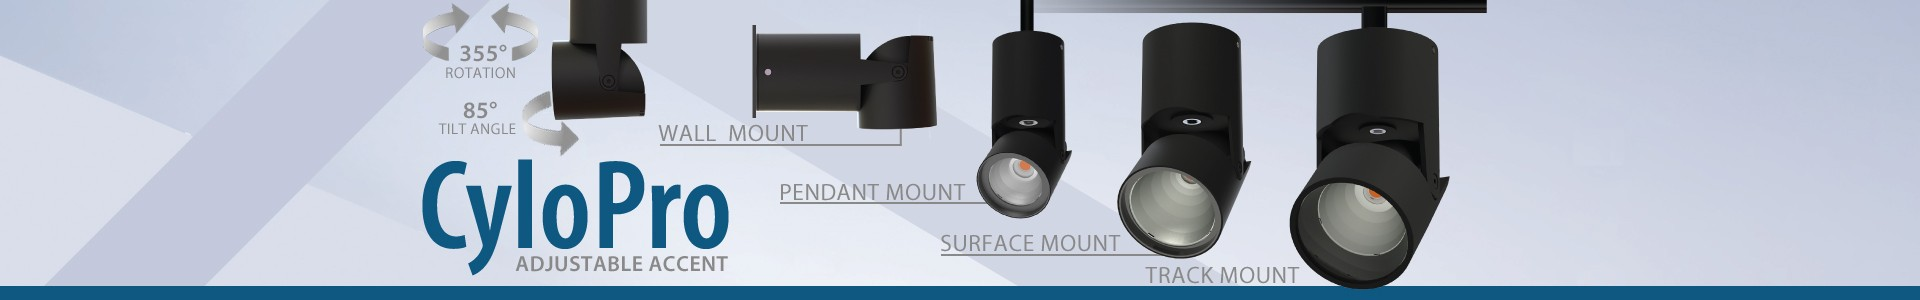 New Cylopro Adjustable Accent Series!